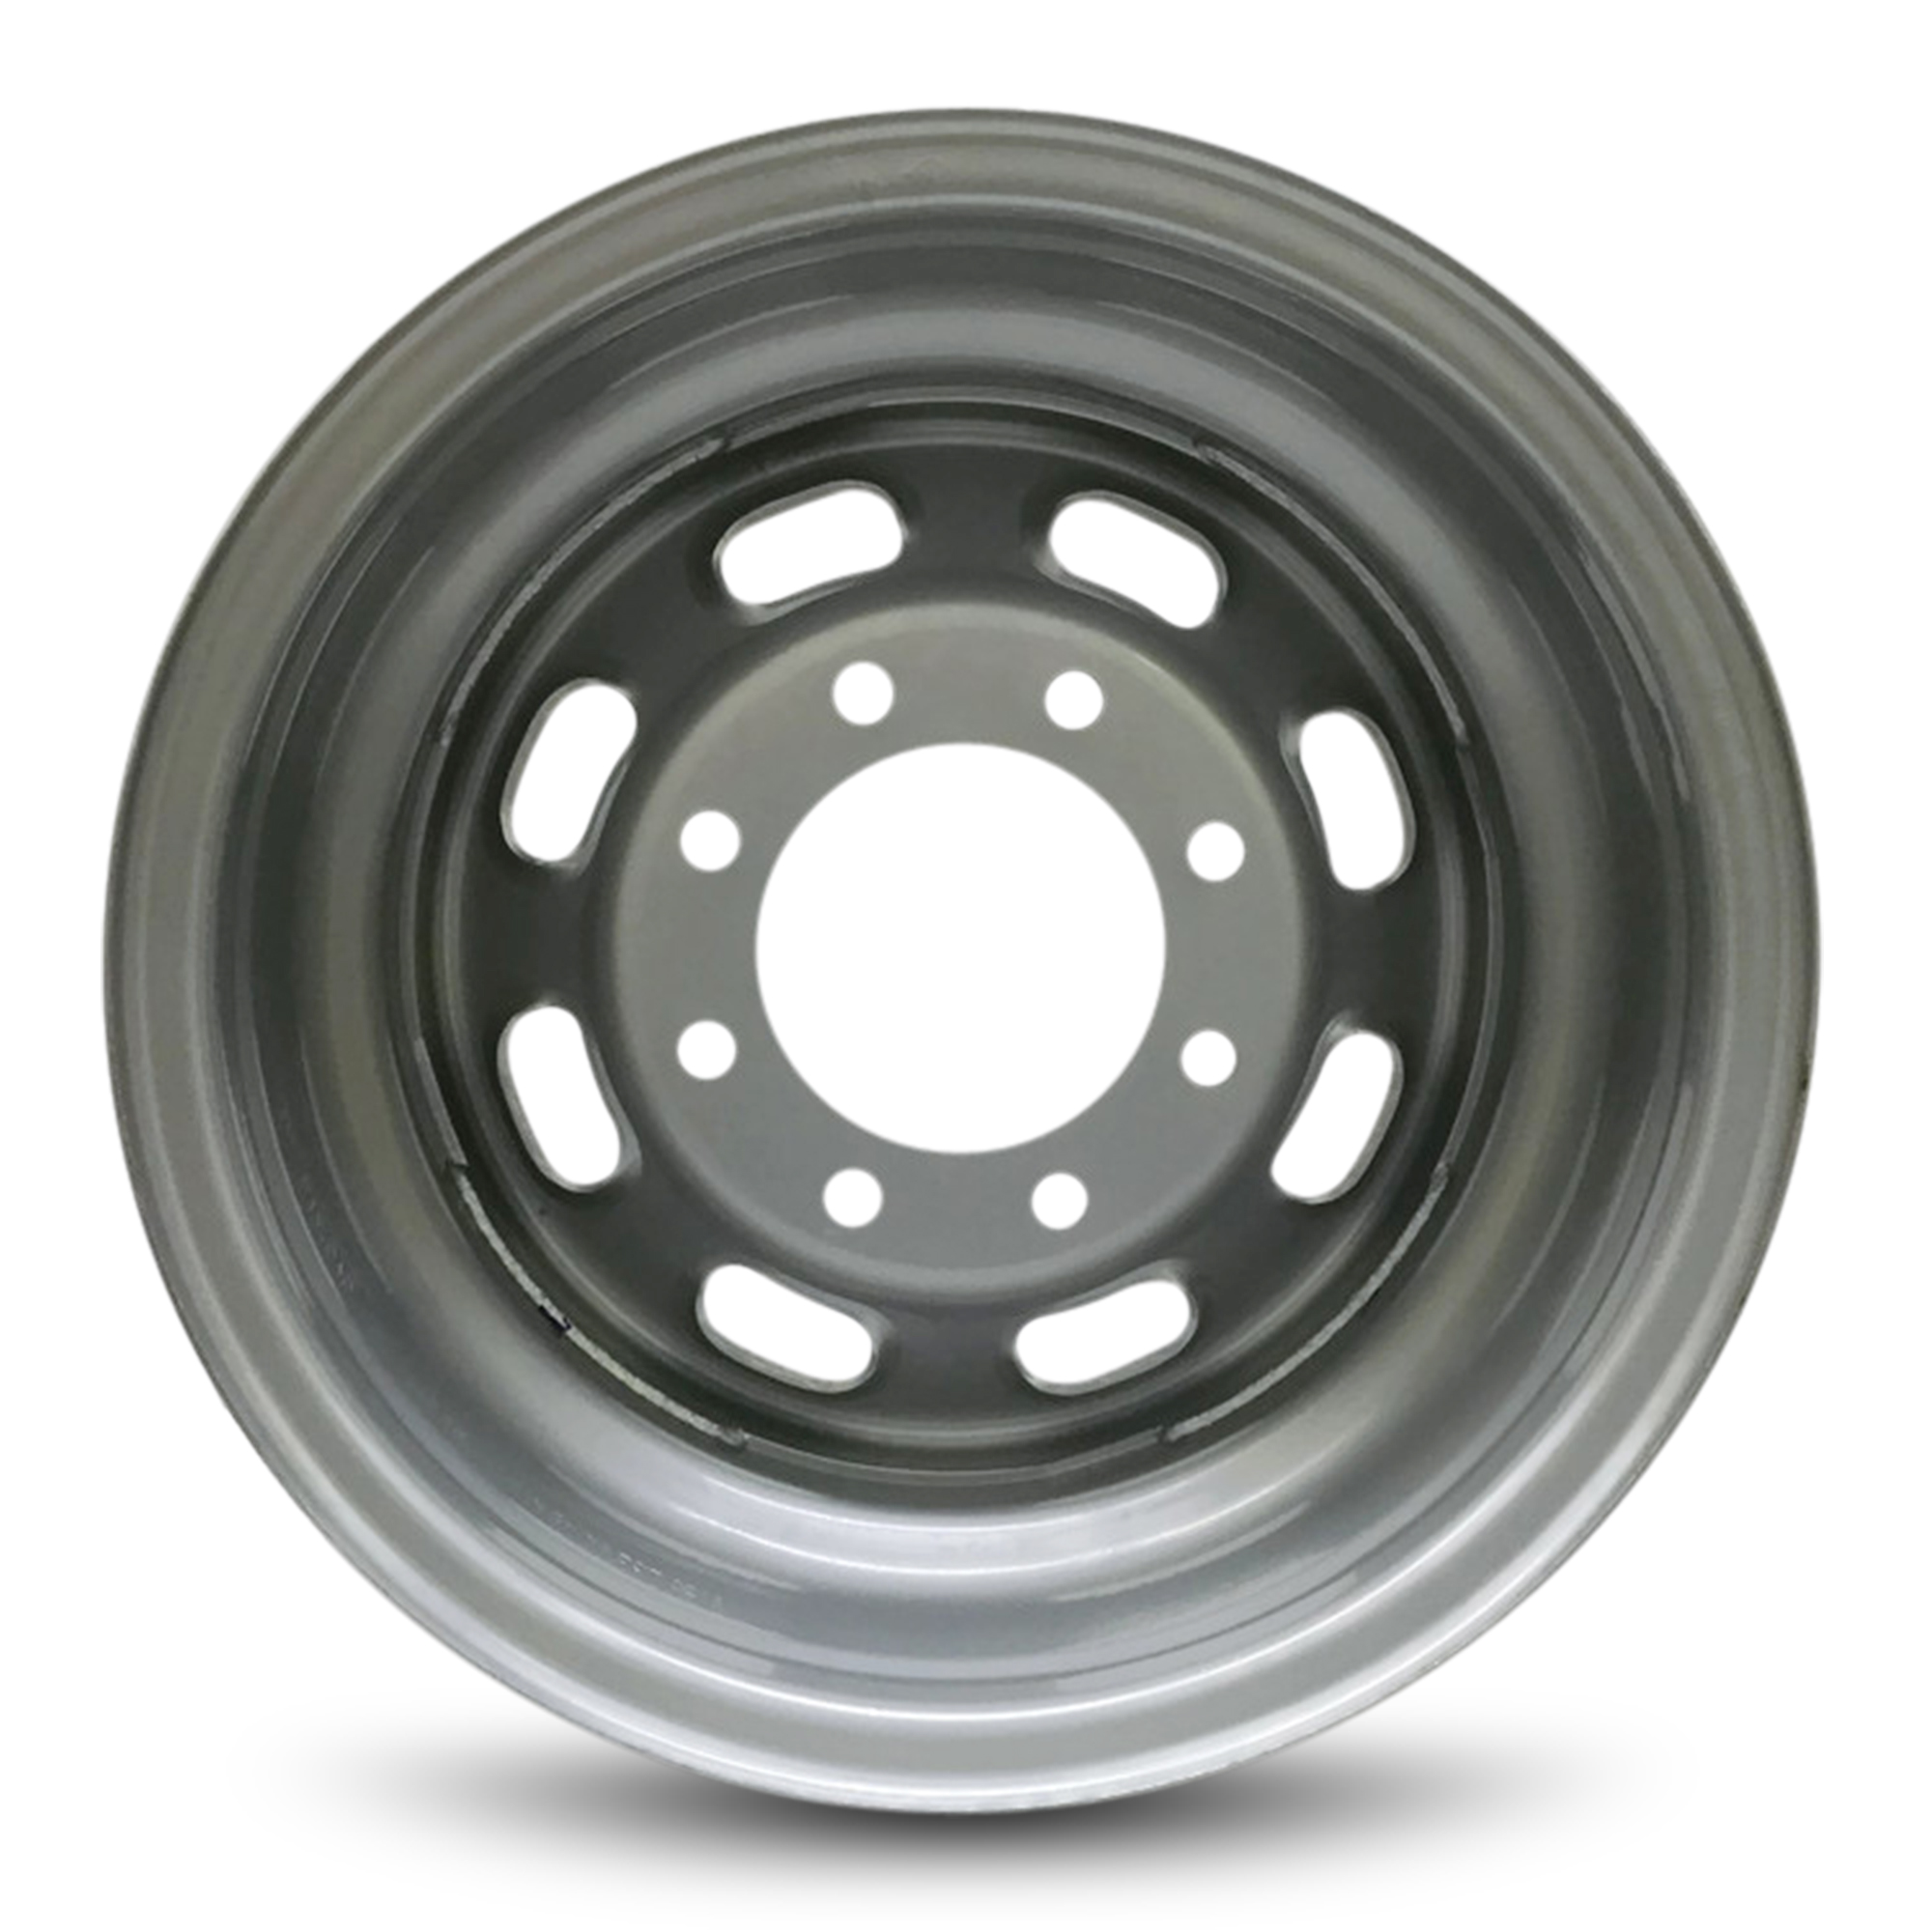 Acura Tl Lug Nuts besides Will 2013 F350 Rims Fit A 2008 F250 furthermore Silver 5c besides Ford F250sd Steel Wheel furthermore Fusion2009rims. on 2006 ford fusion rim size